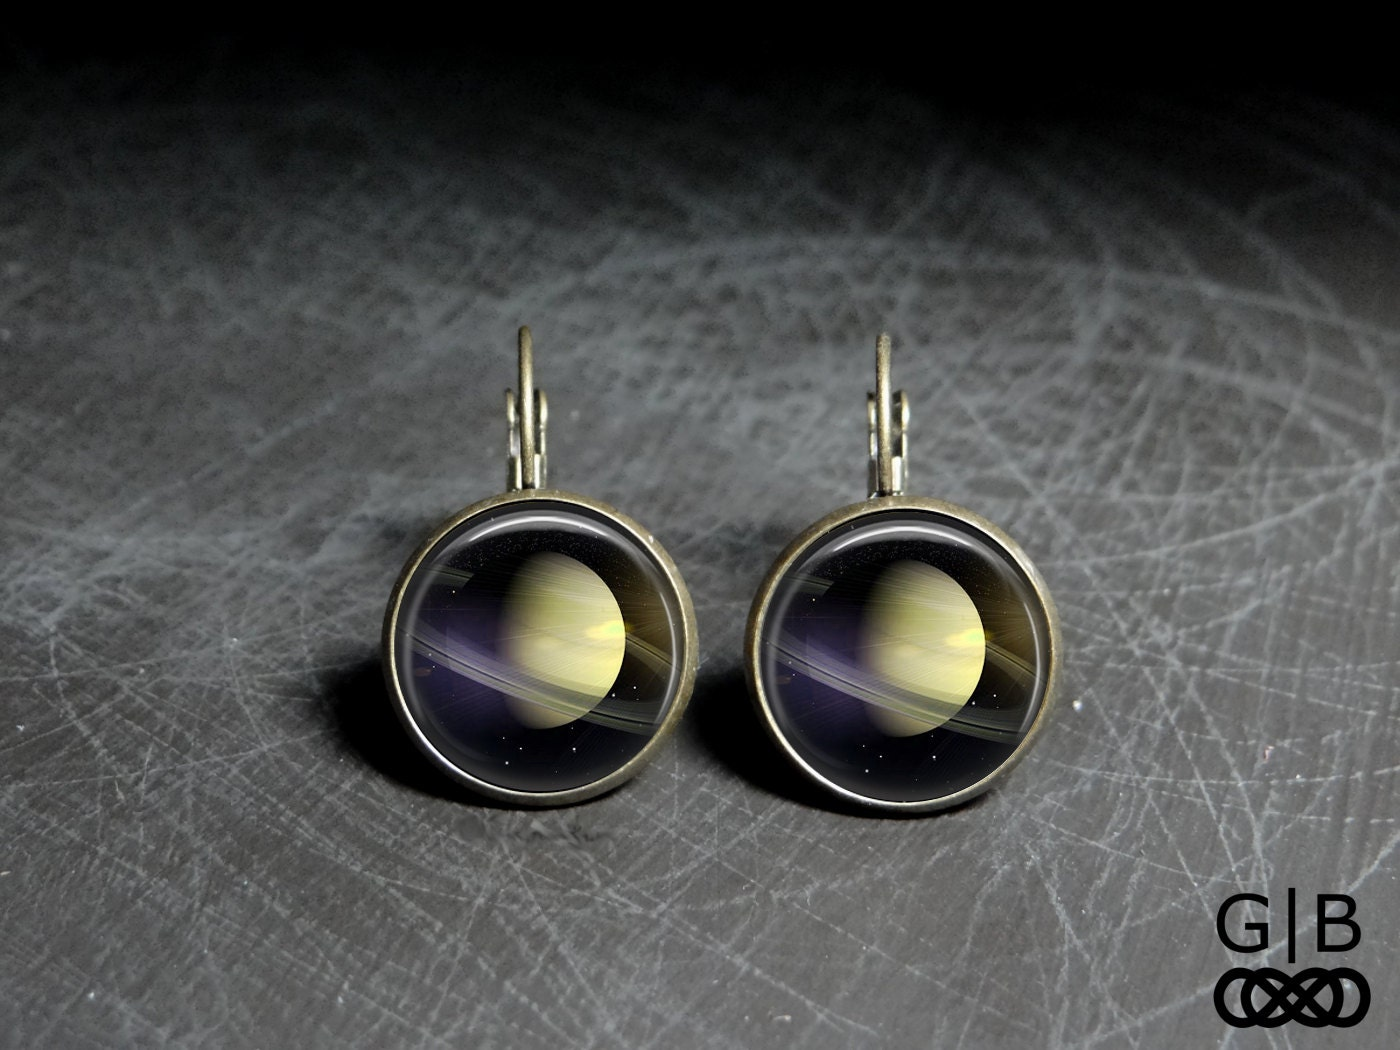 planet saturn earring - photo #23